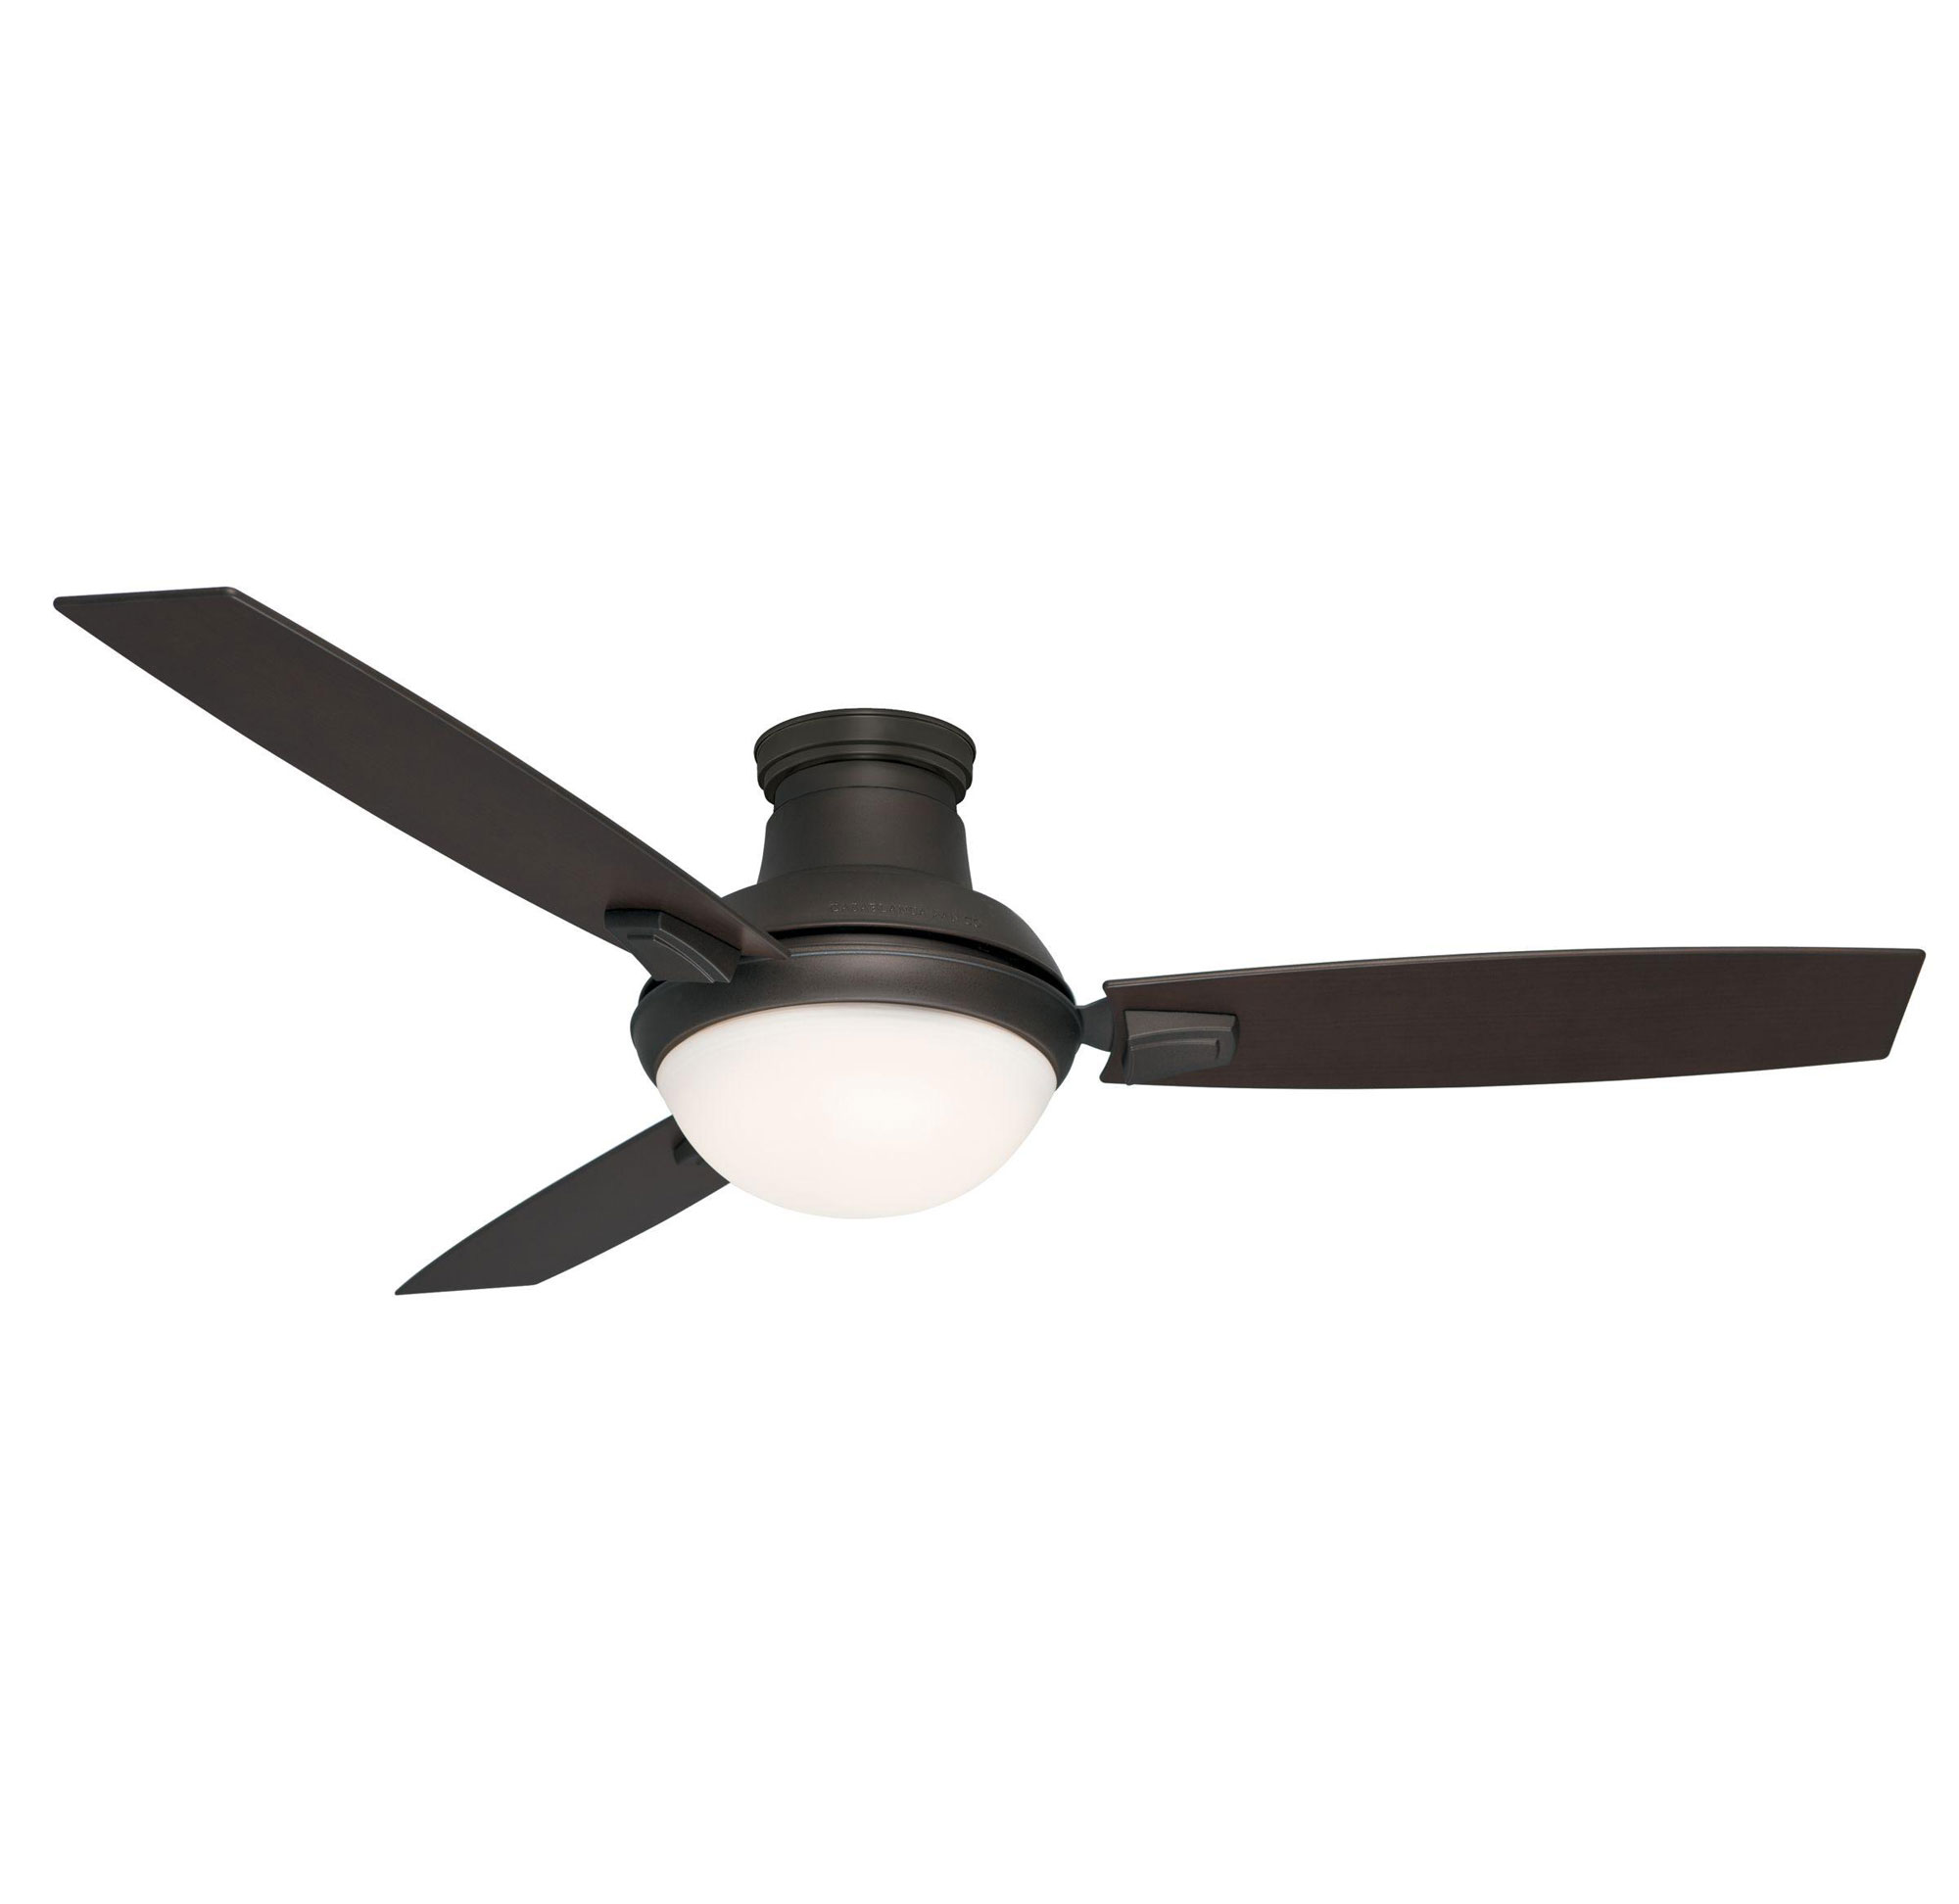 ceiling fan 44 inch. Verse 54 Inch LED Ceiling Fan By Casablanca | 59159 44 L